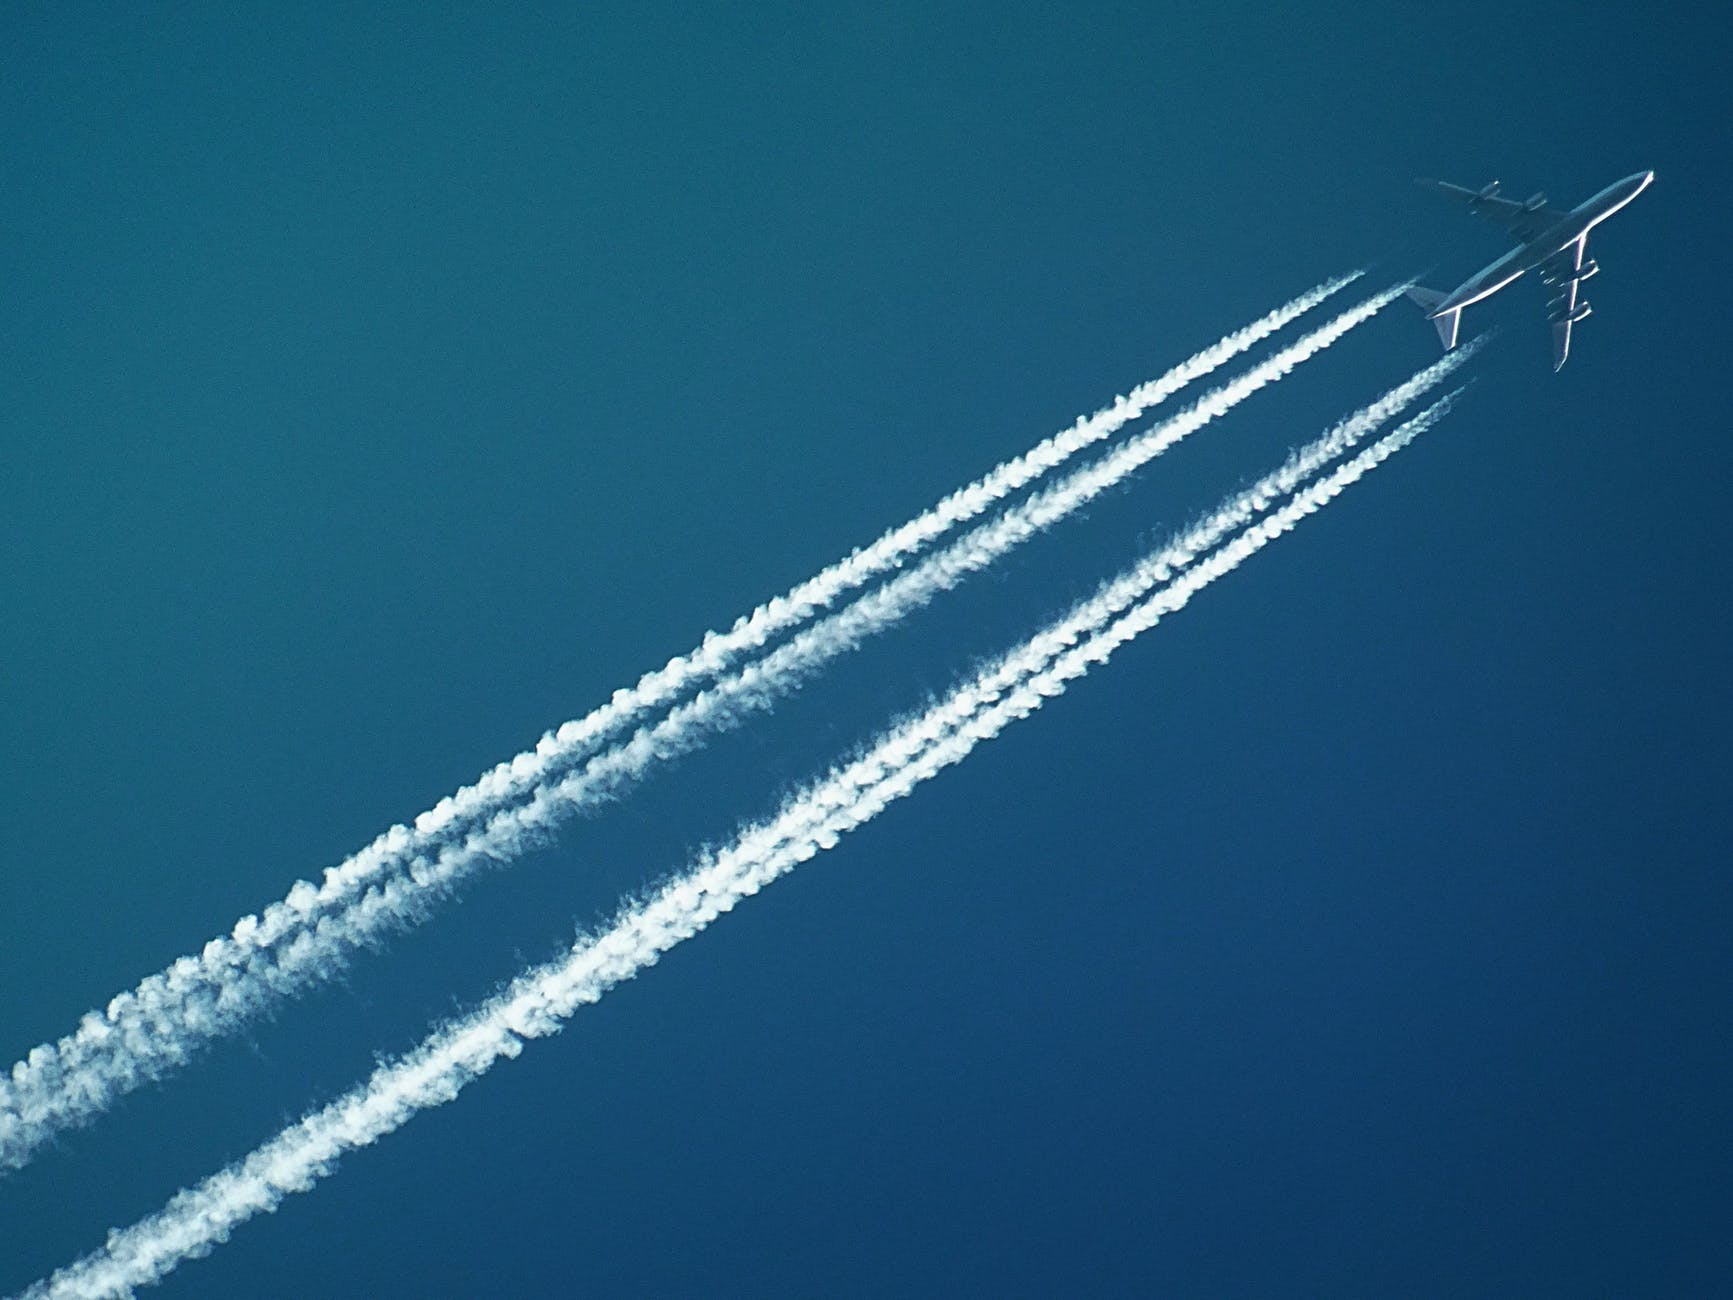 Why did AeroCentury (ACY) stock go up today?